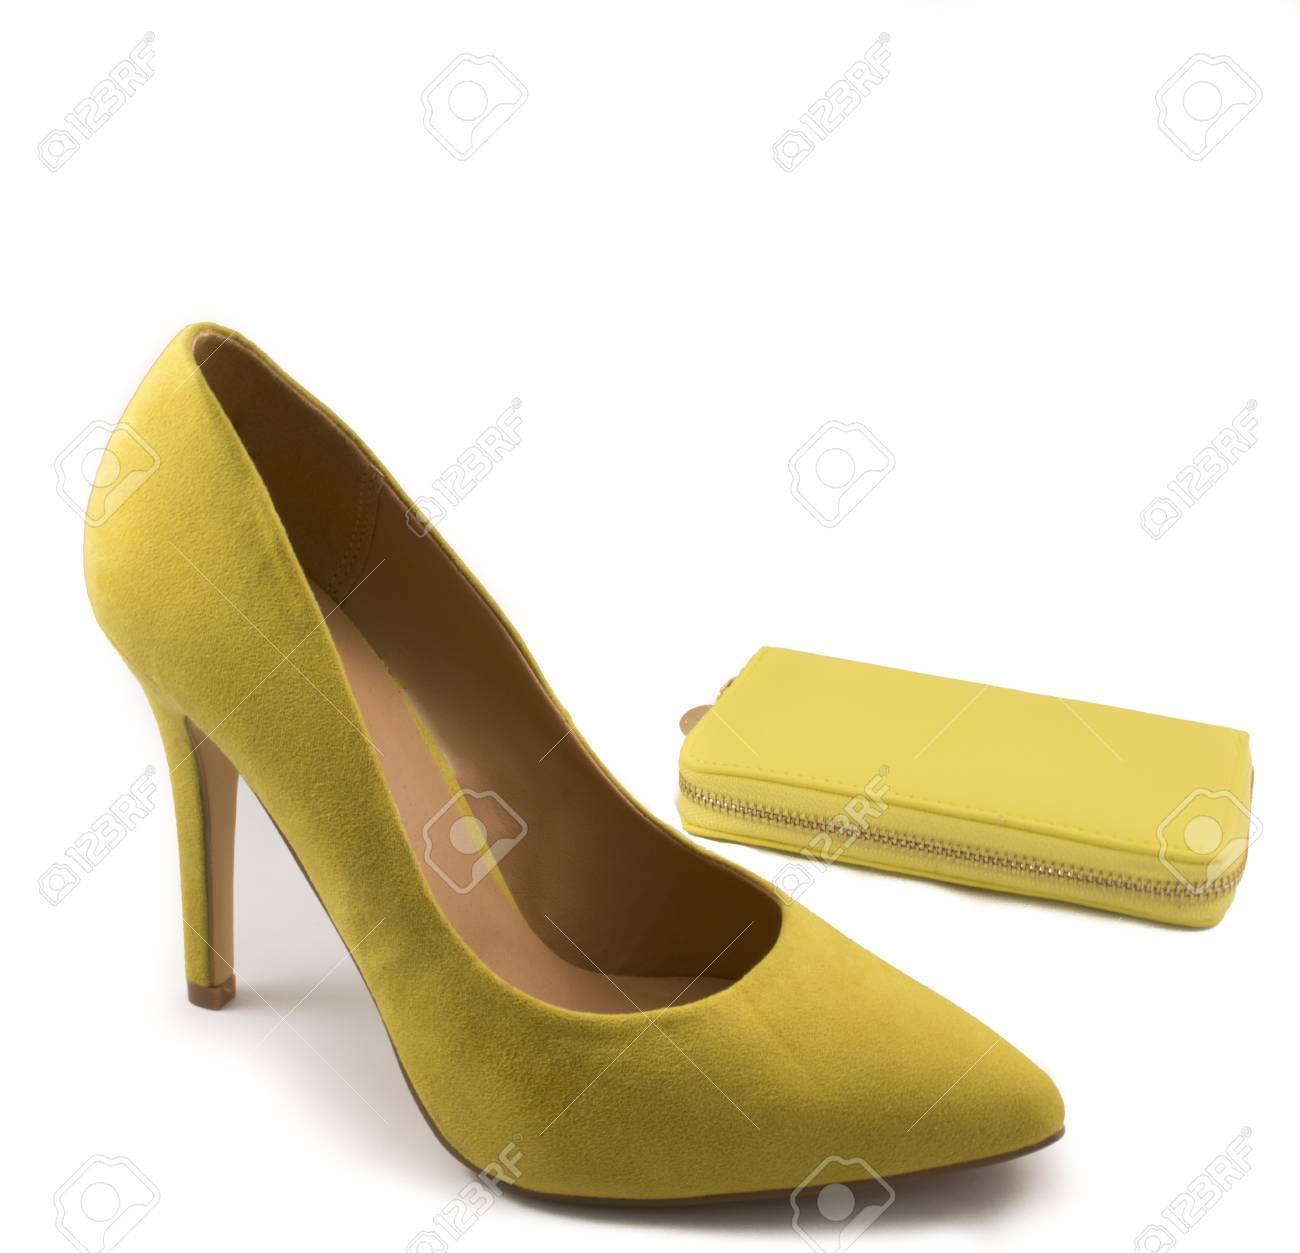 dfac6d62f040 Yellow High Heel Shoe and Yellow Purse on White Background Stock Photo -  44632393